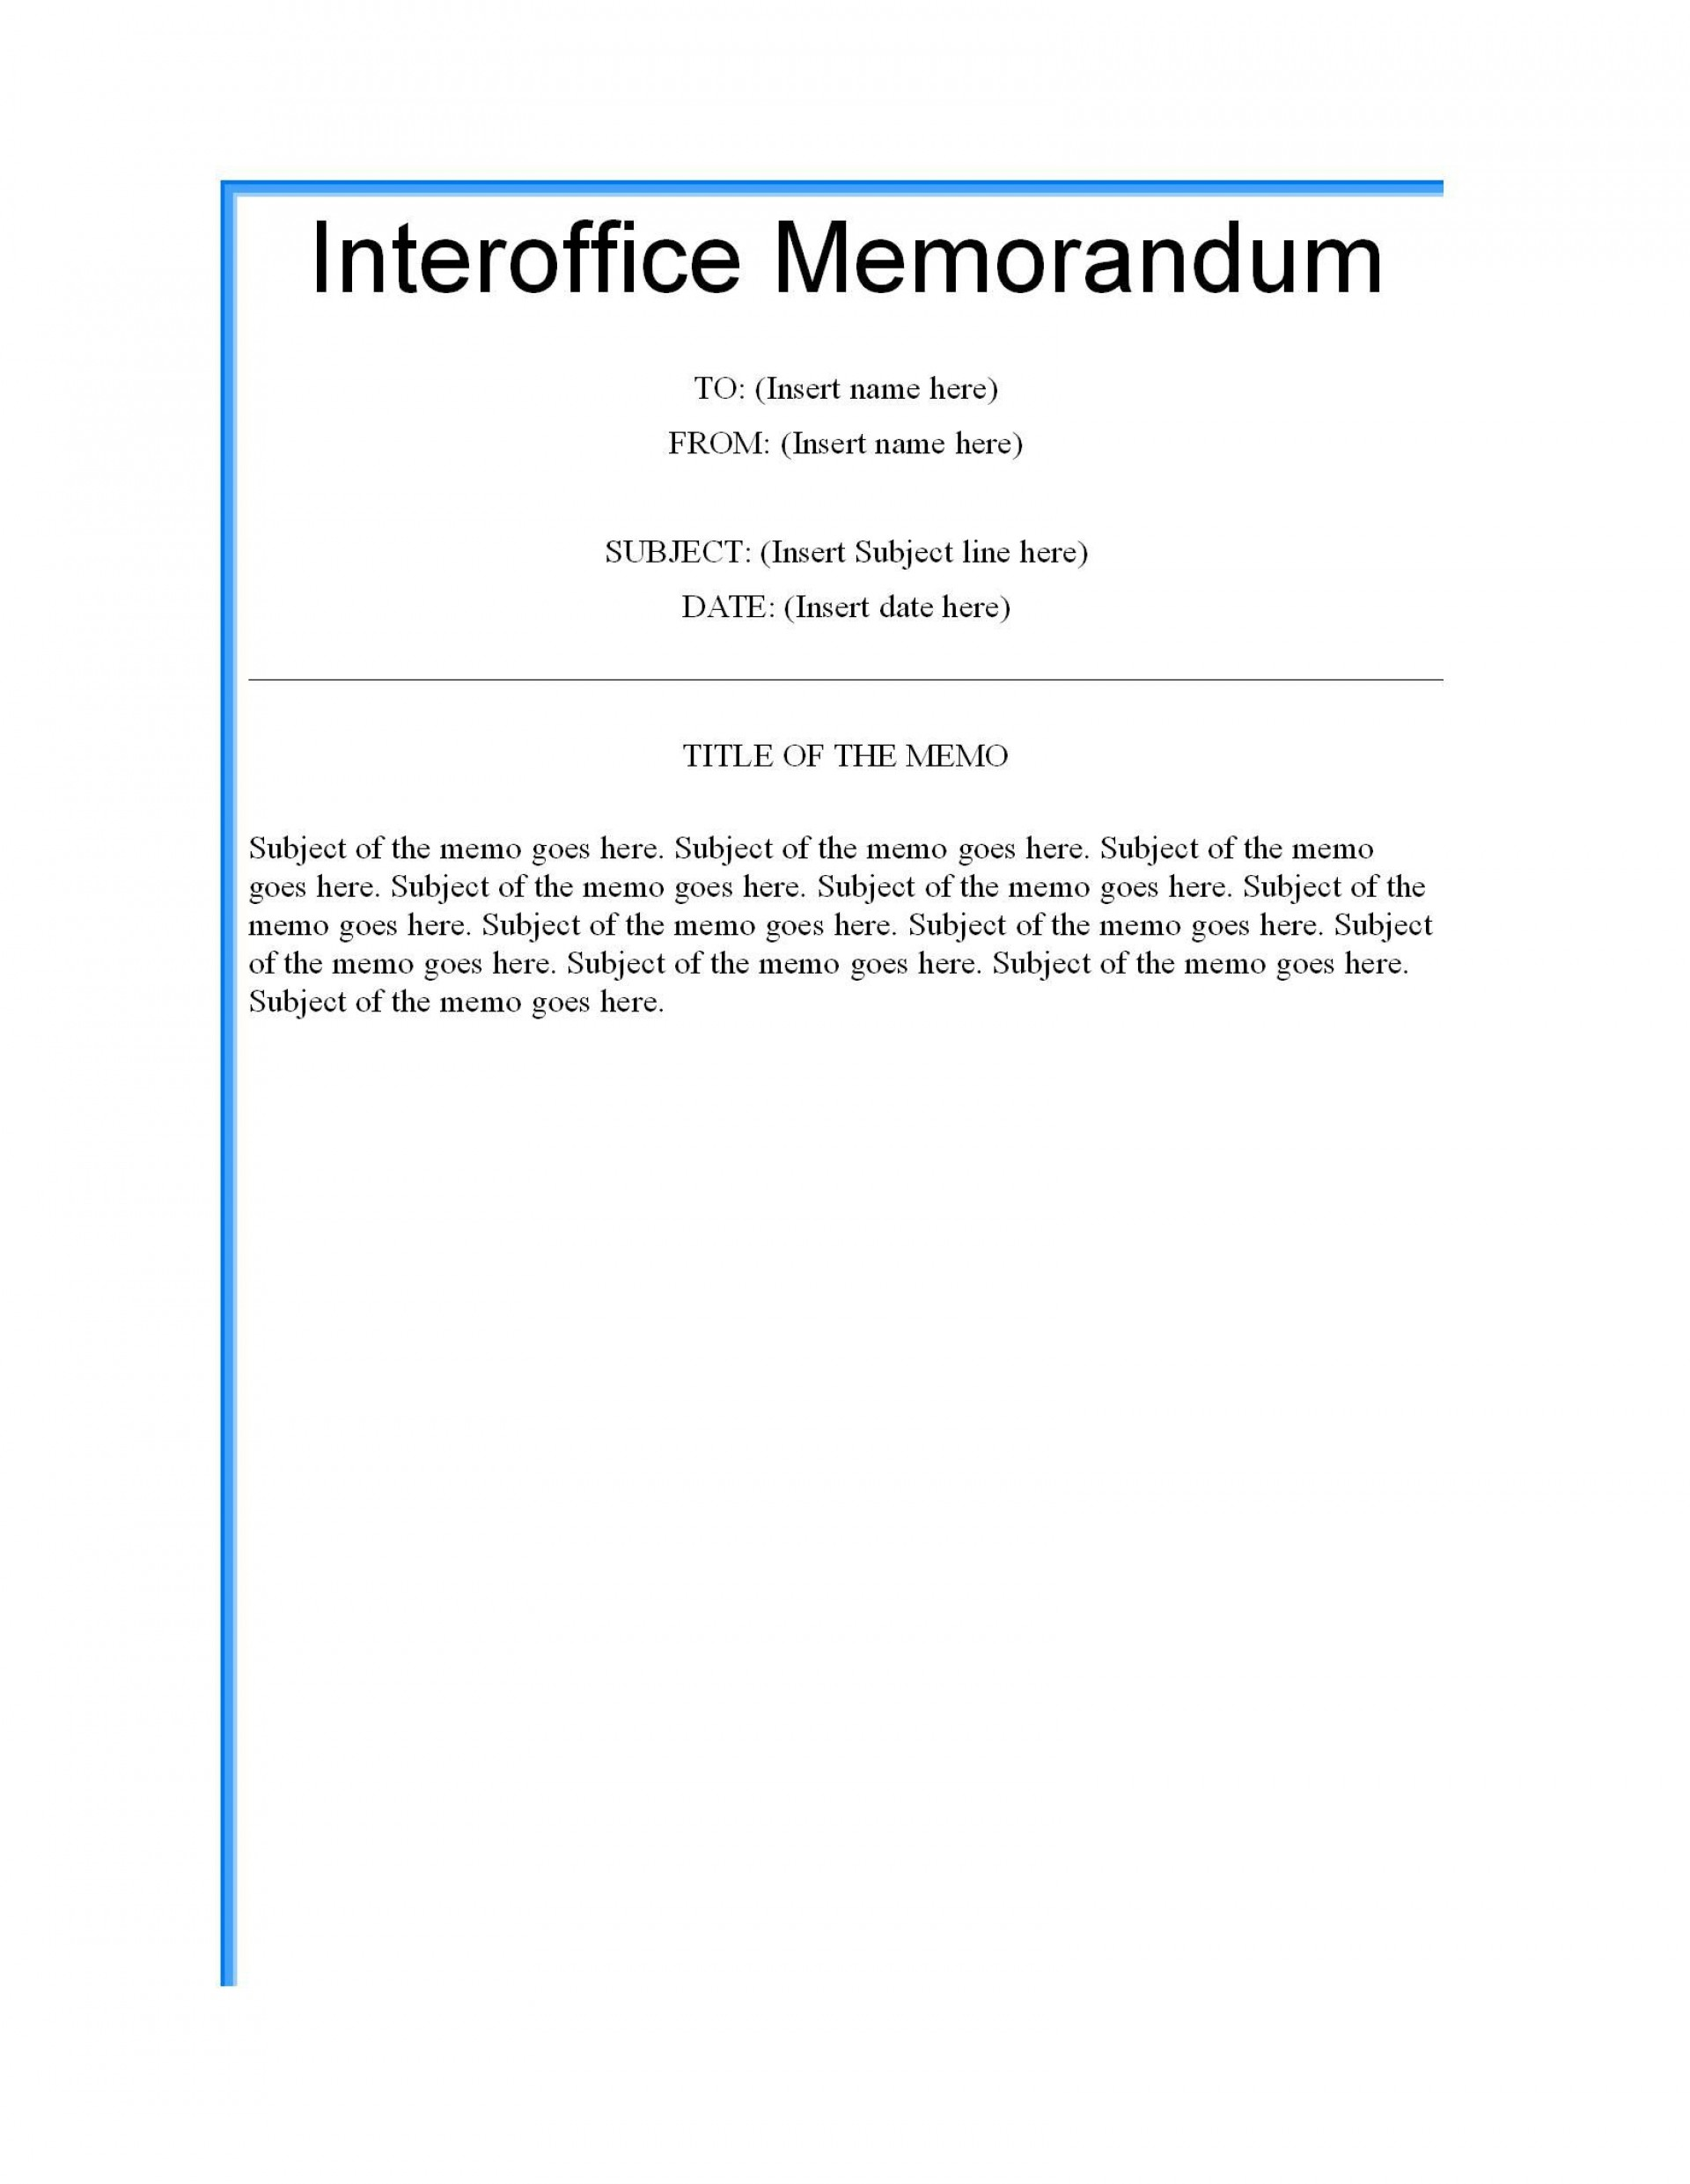 003 Formidable Microsoft Word Memo Template Highest Clarity  Professional 2010 Free Legal1920